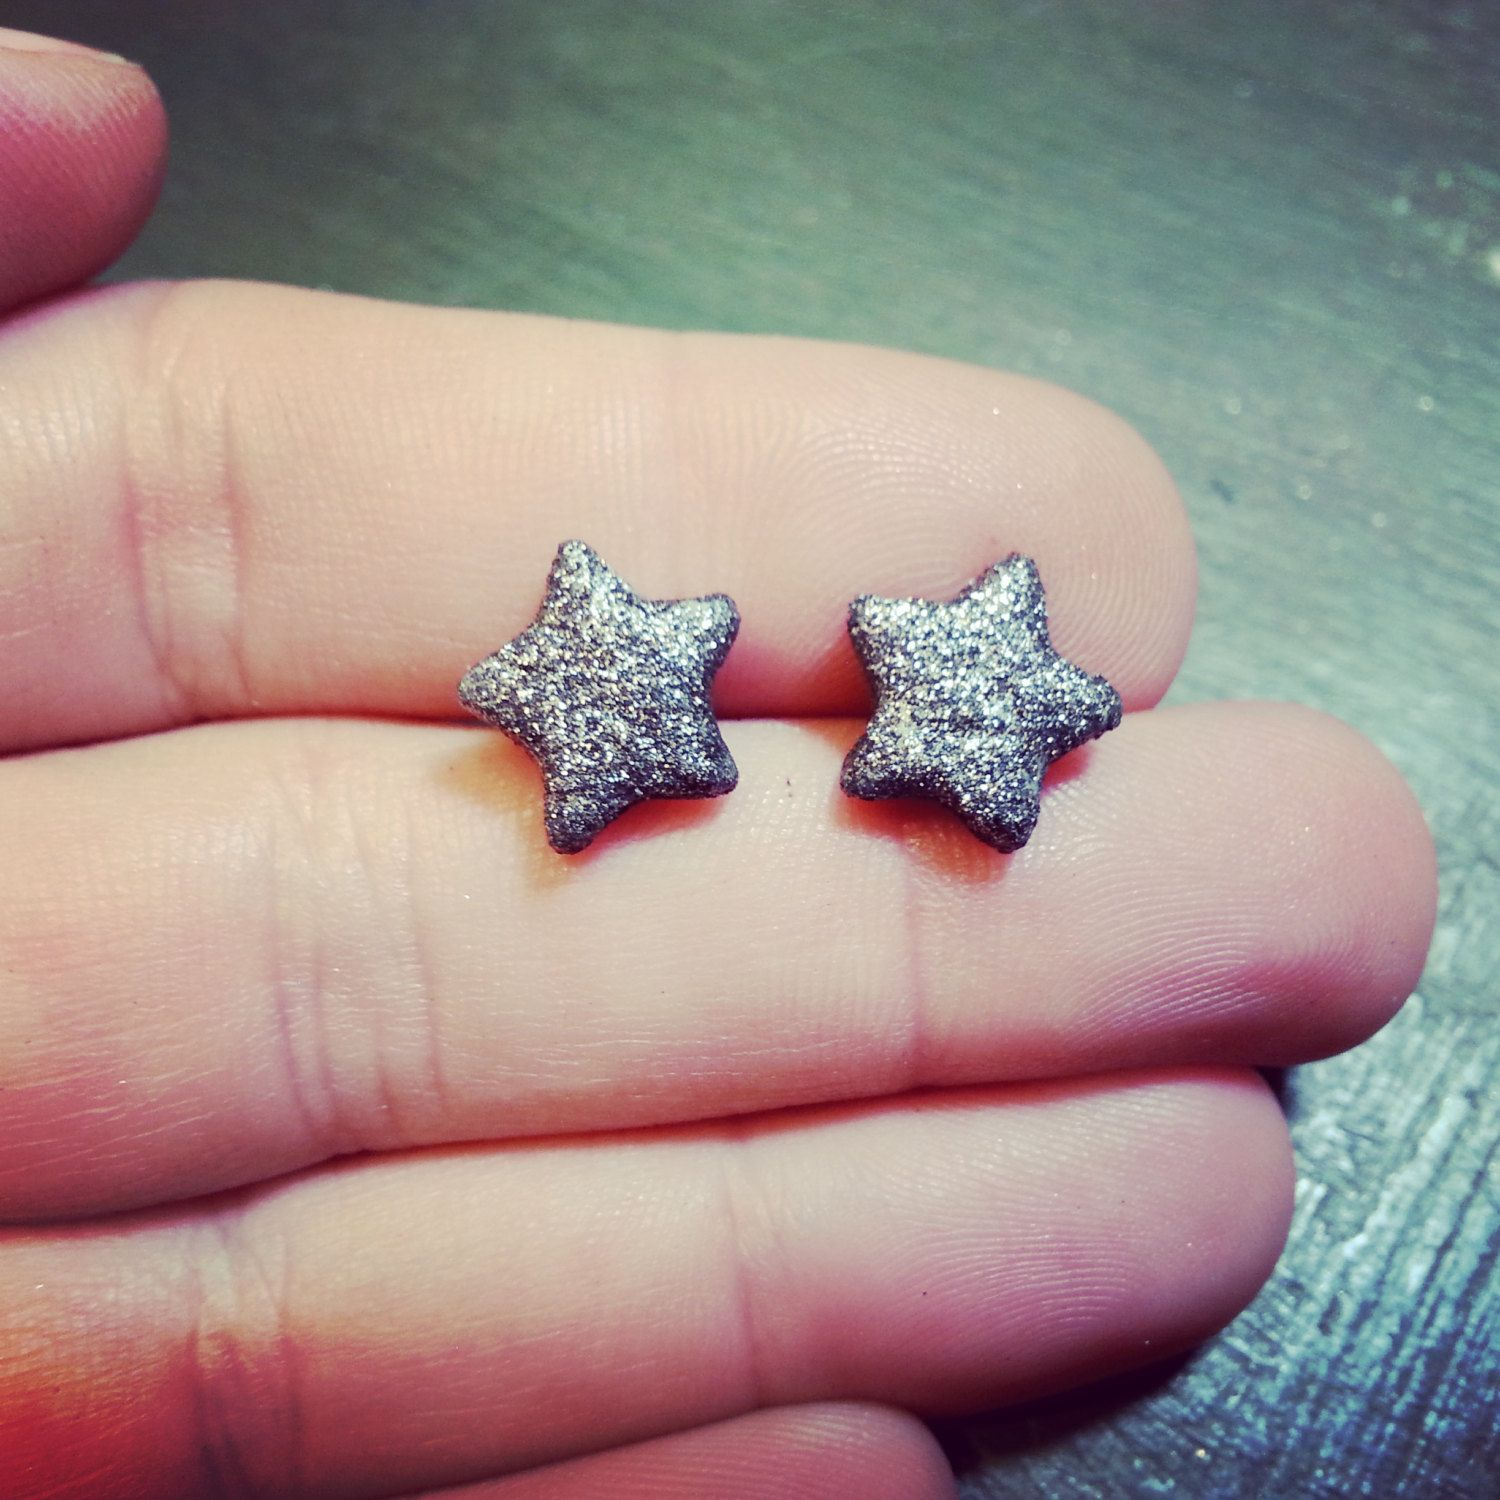 New to jennascifres on Etsy: Dark Grey Silver Glitter Star Earrings - Polymer Clay Stud Earrings - Silver Star Post Earrings - Hypoallergenic - Great for Sensitive Ears (6.00 USD)